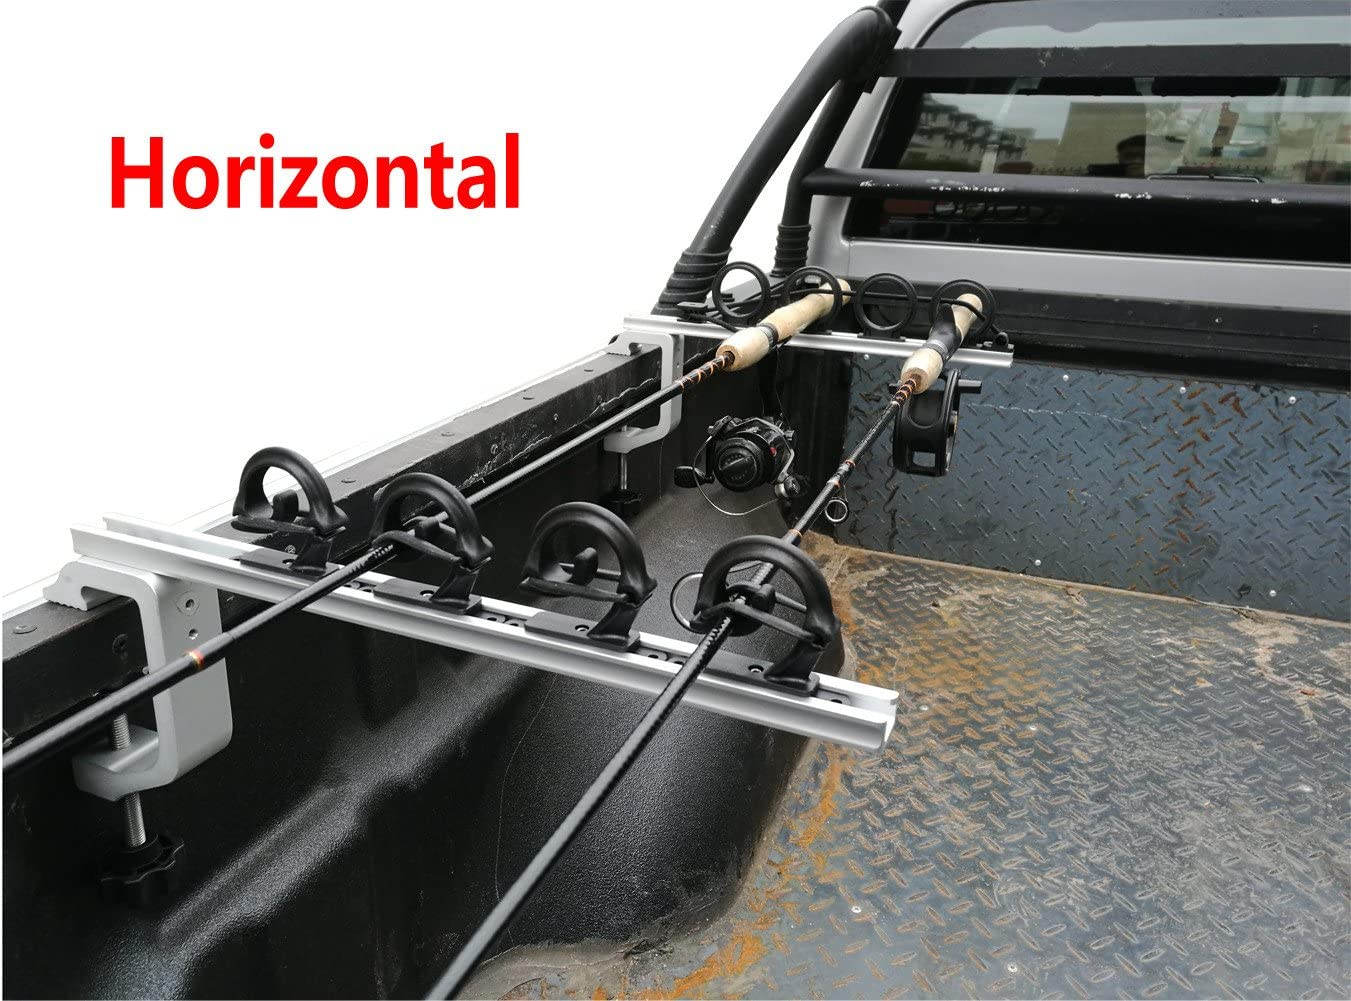 Brocraft Aluminum Clamp on Rod Holder for Truck or Boat Truck Bed Rod Holder